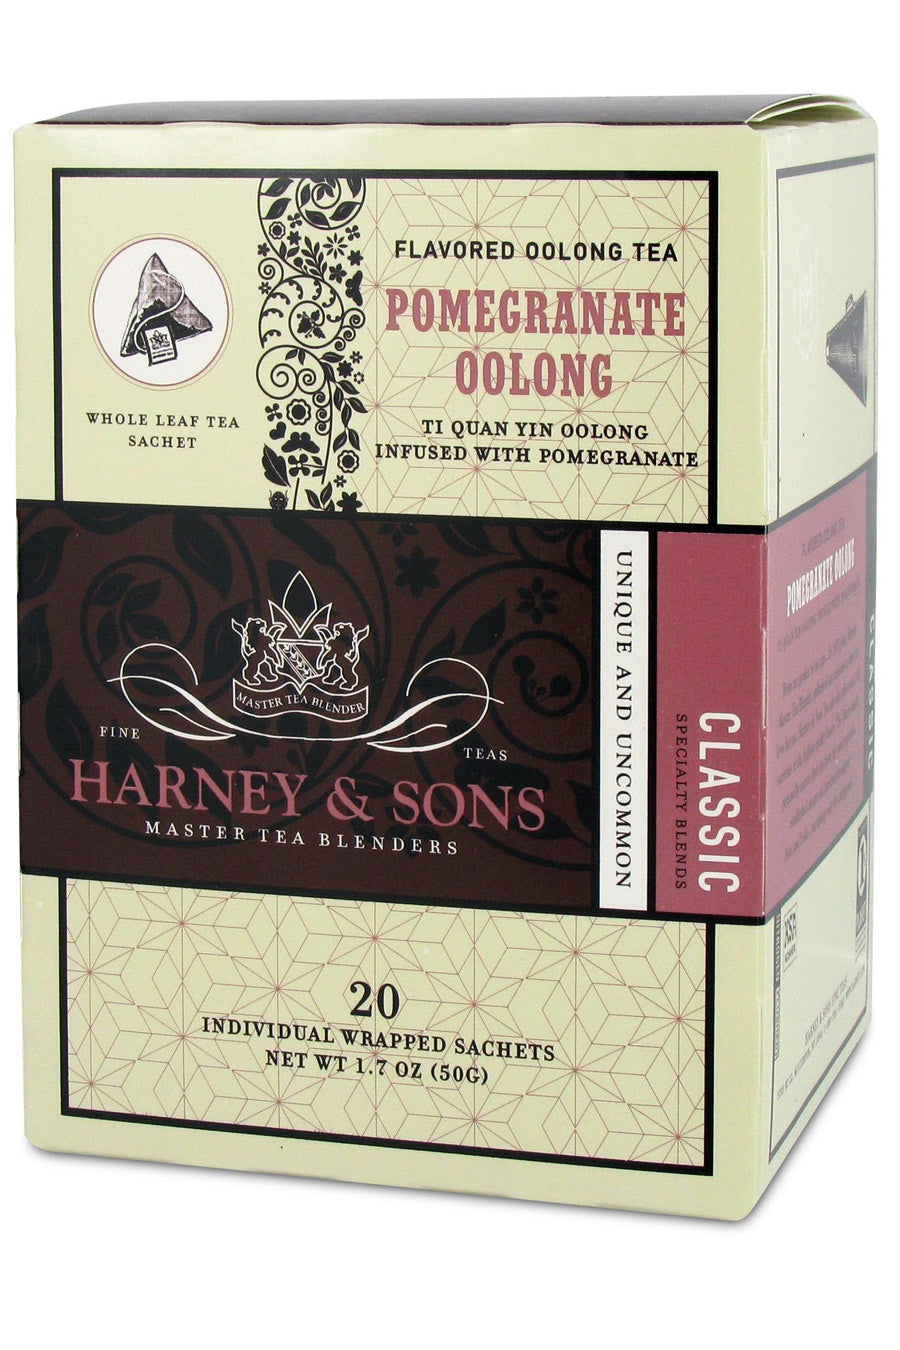 Harney & Sons Pomegranate Oolong Tea 20ct